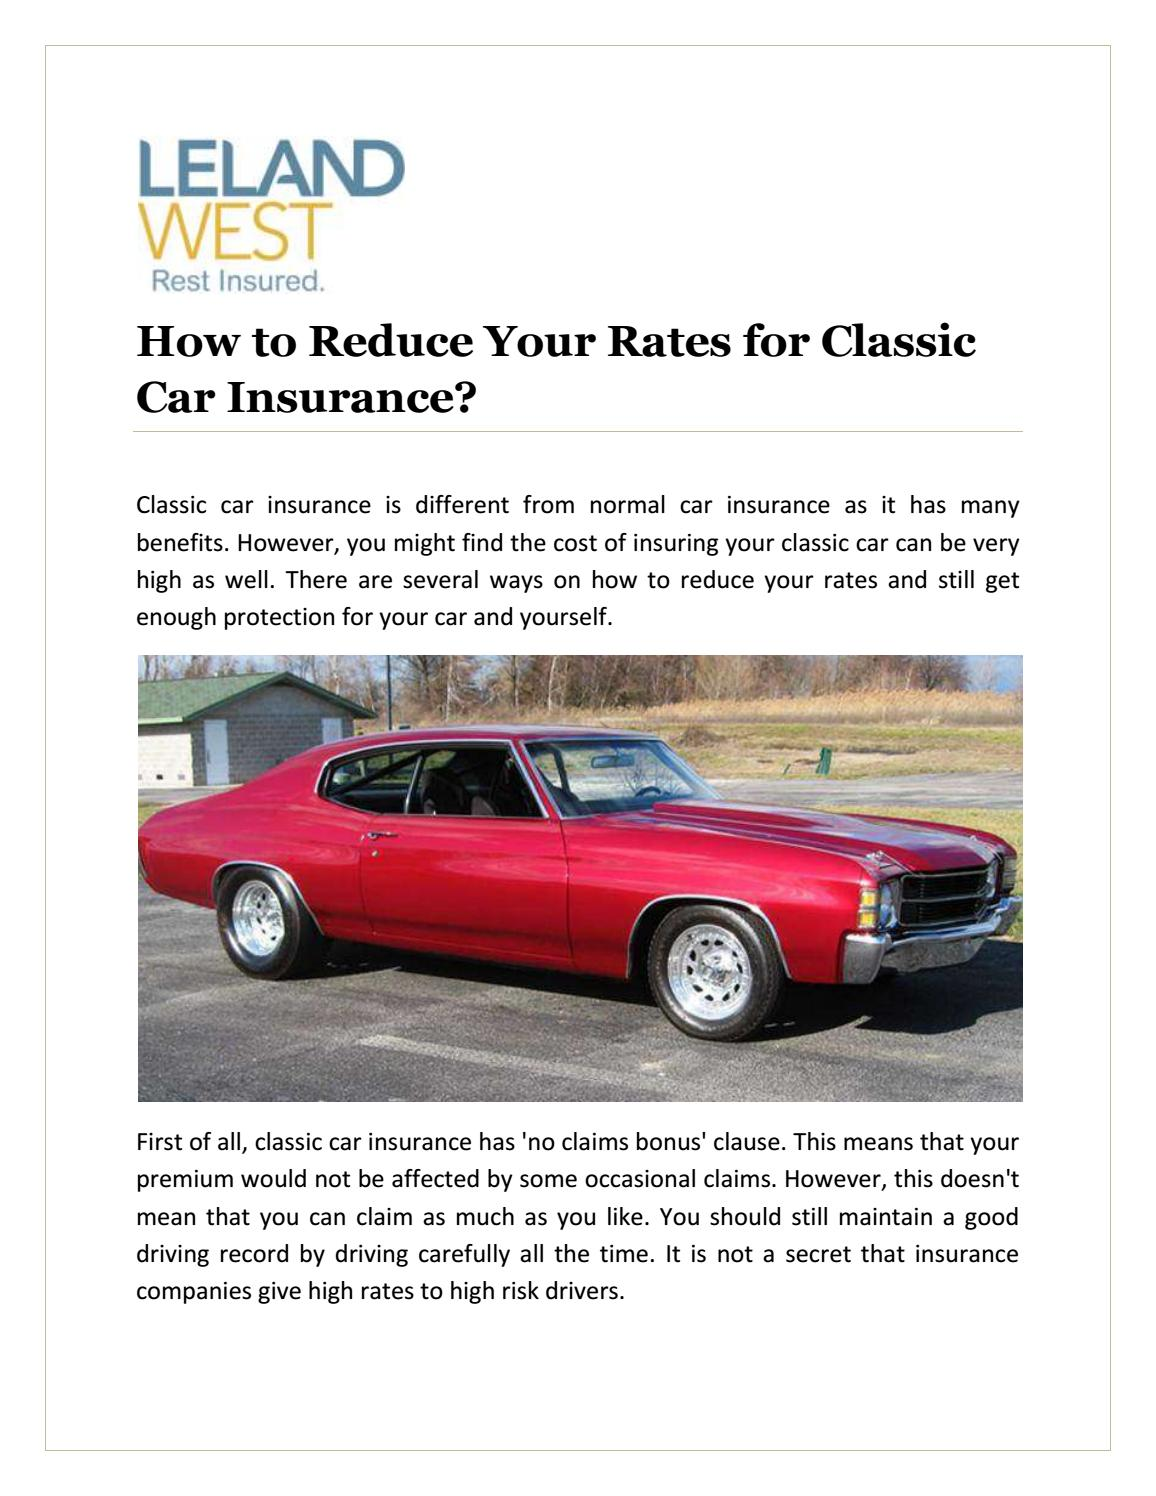 How To Reduce Your Rates For Classic Car Insurance By Leland West Insurance Issuu